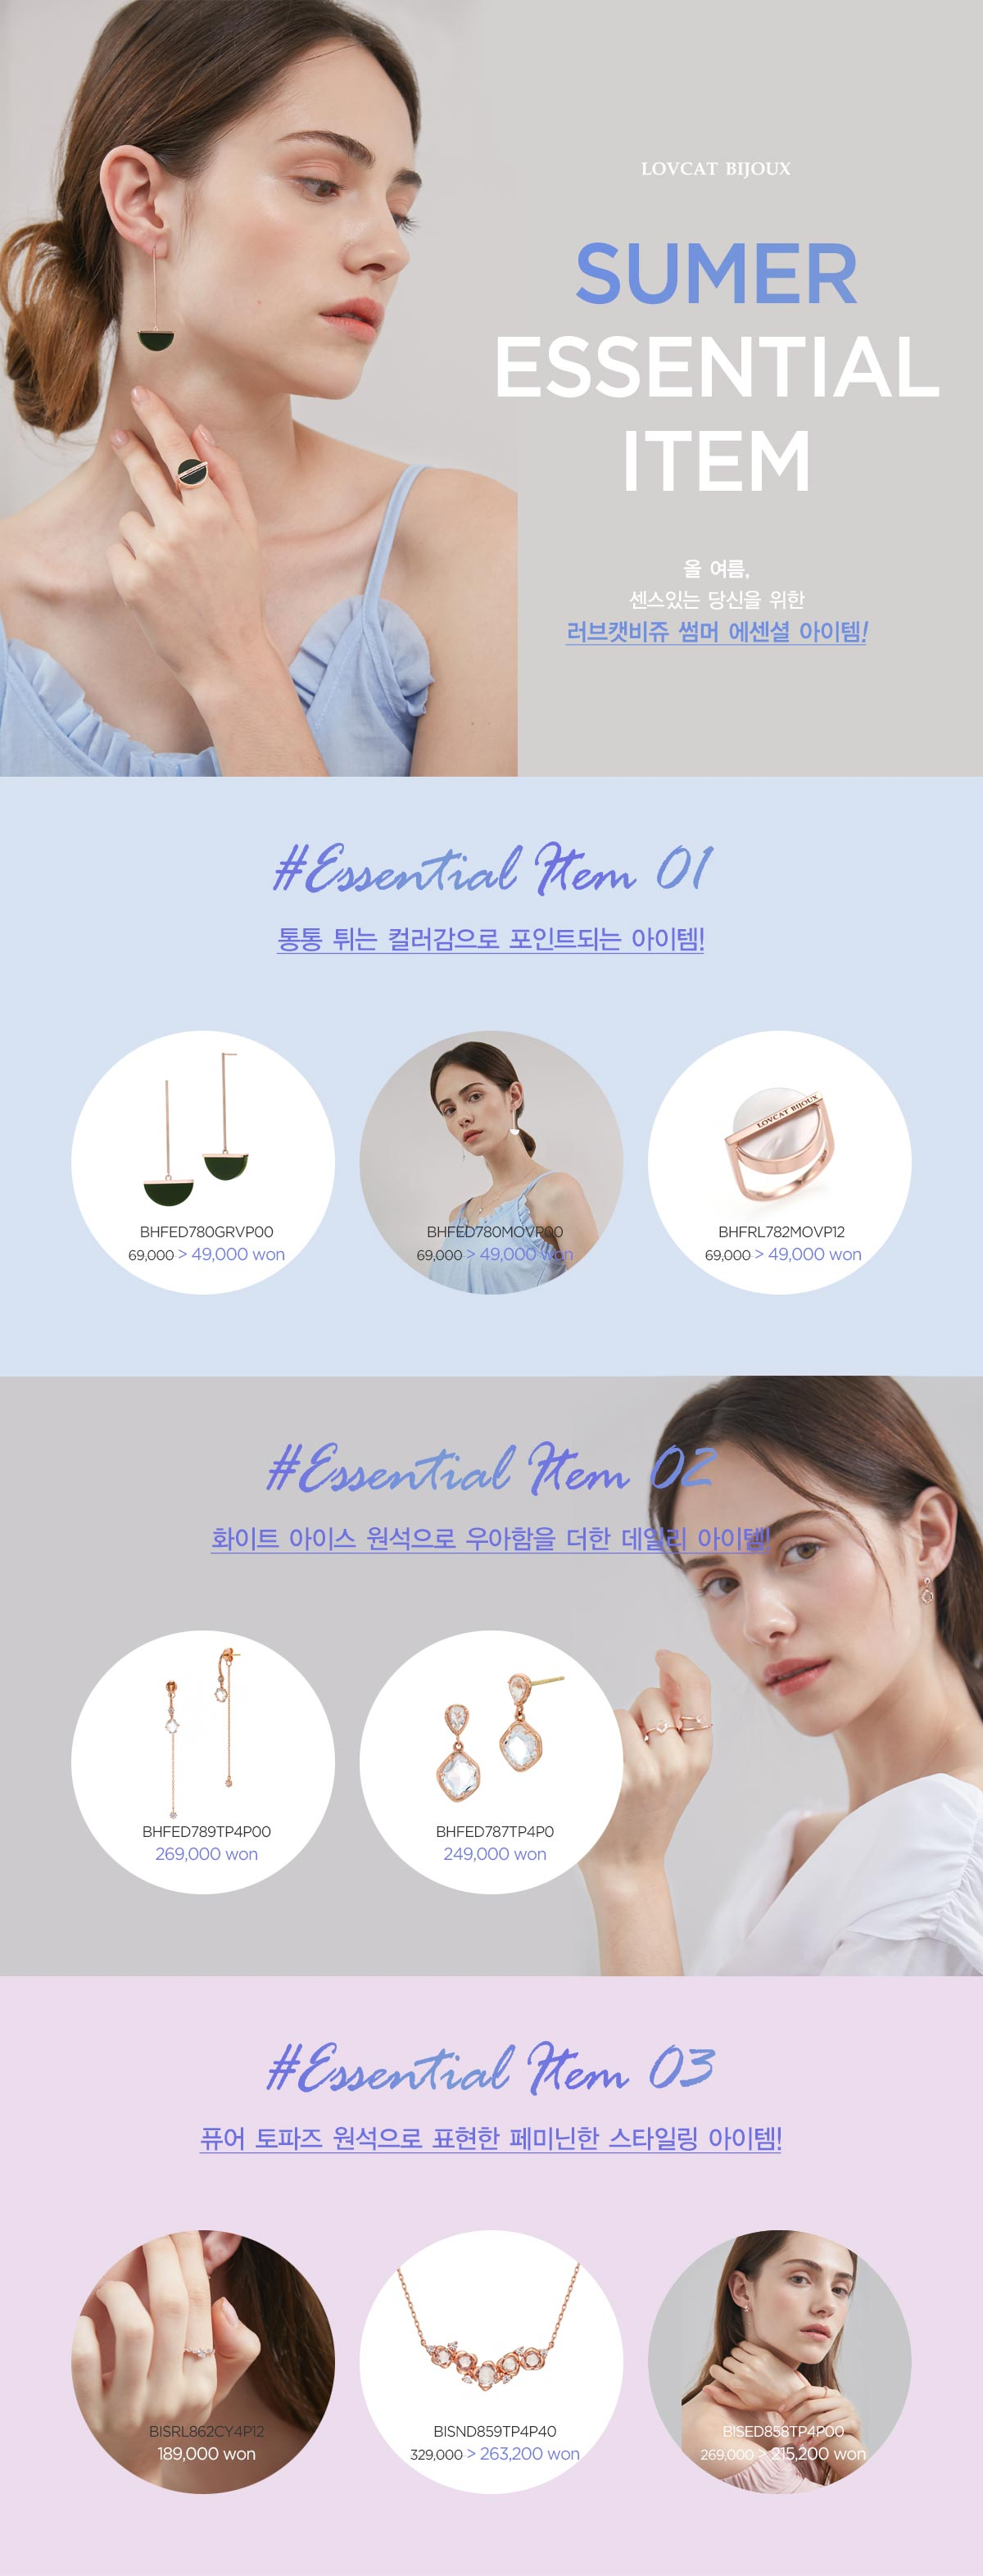 [LOVCAT BIJOUX] SUMMER ESSENTIAL ITEM